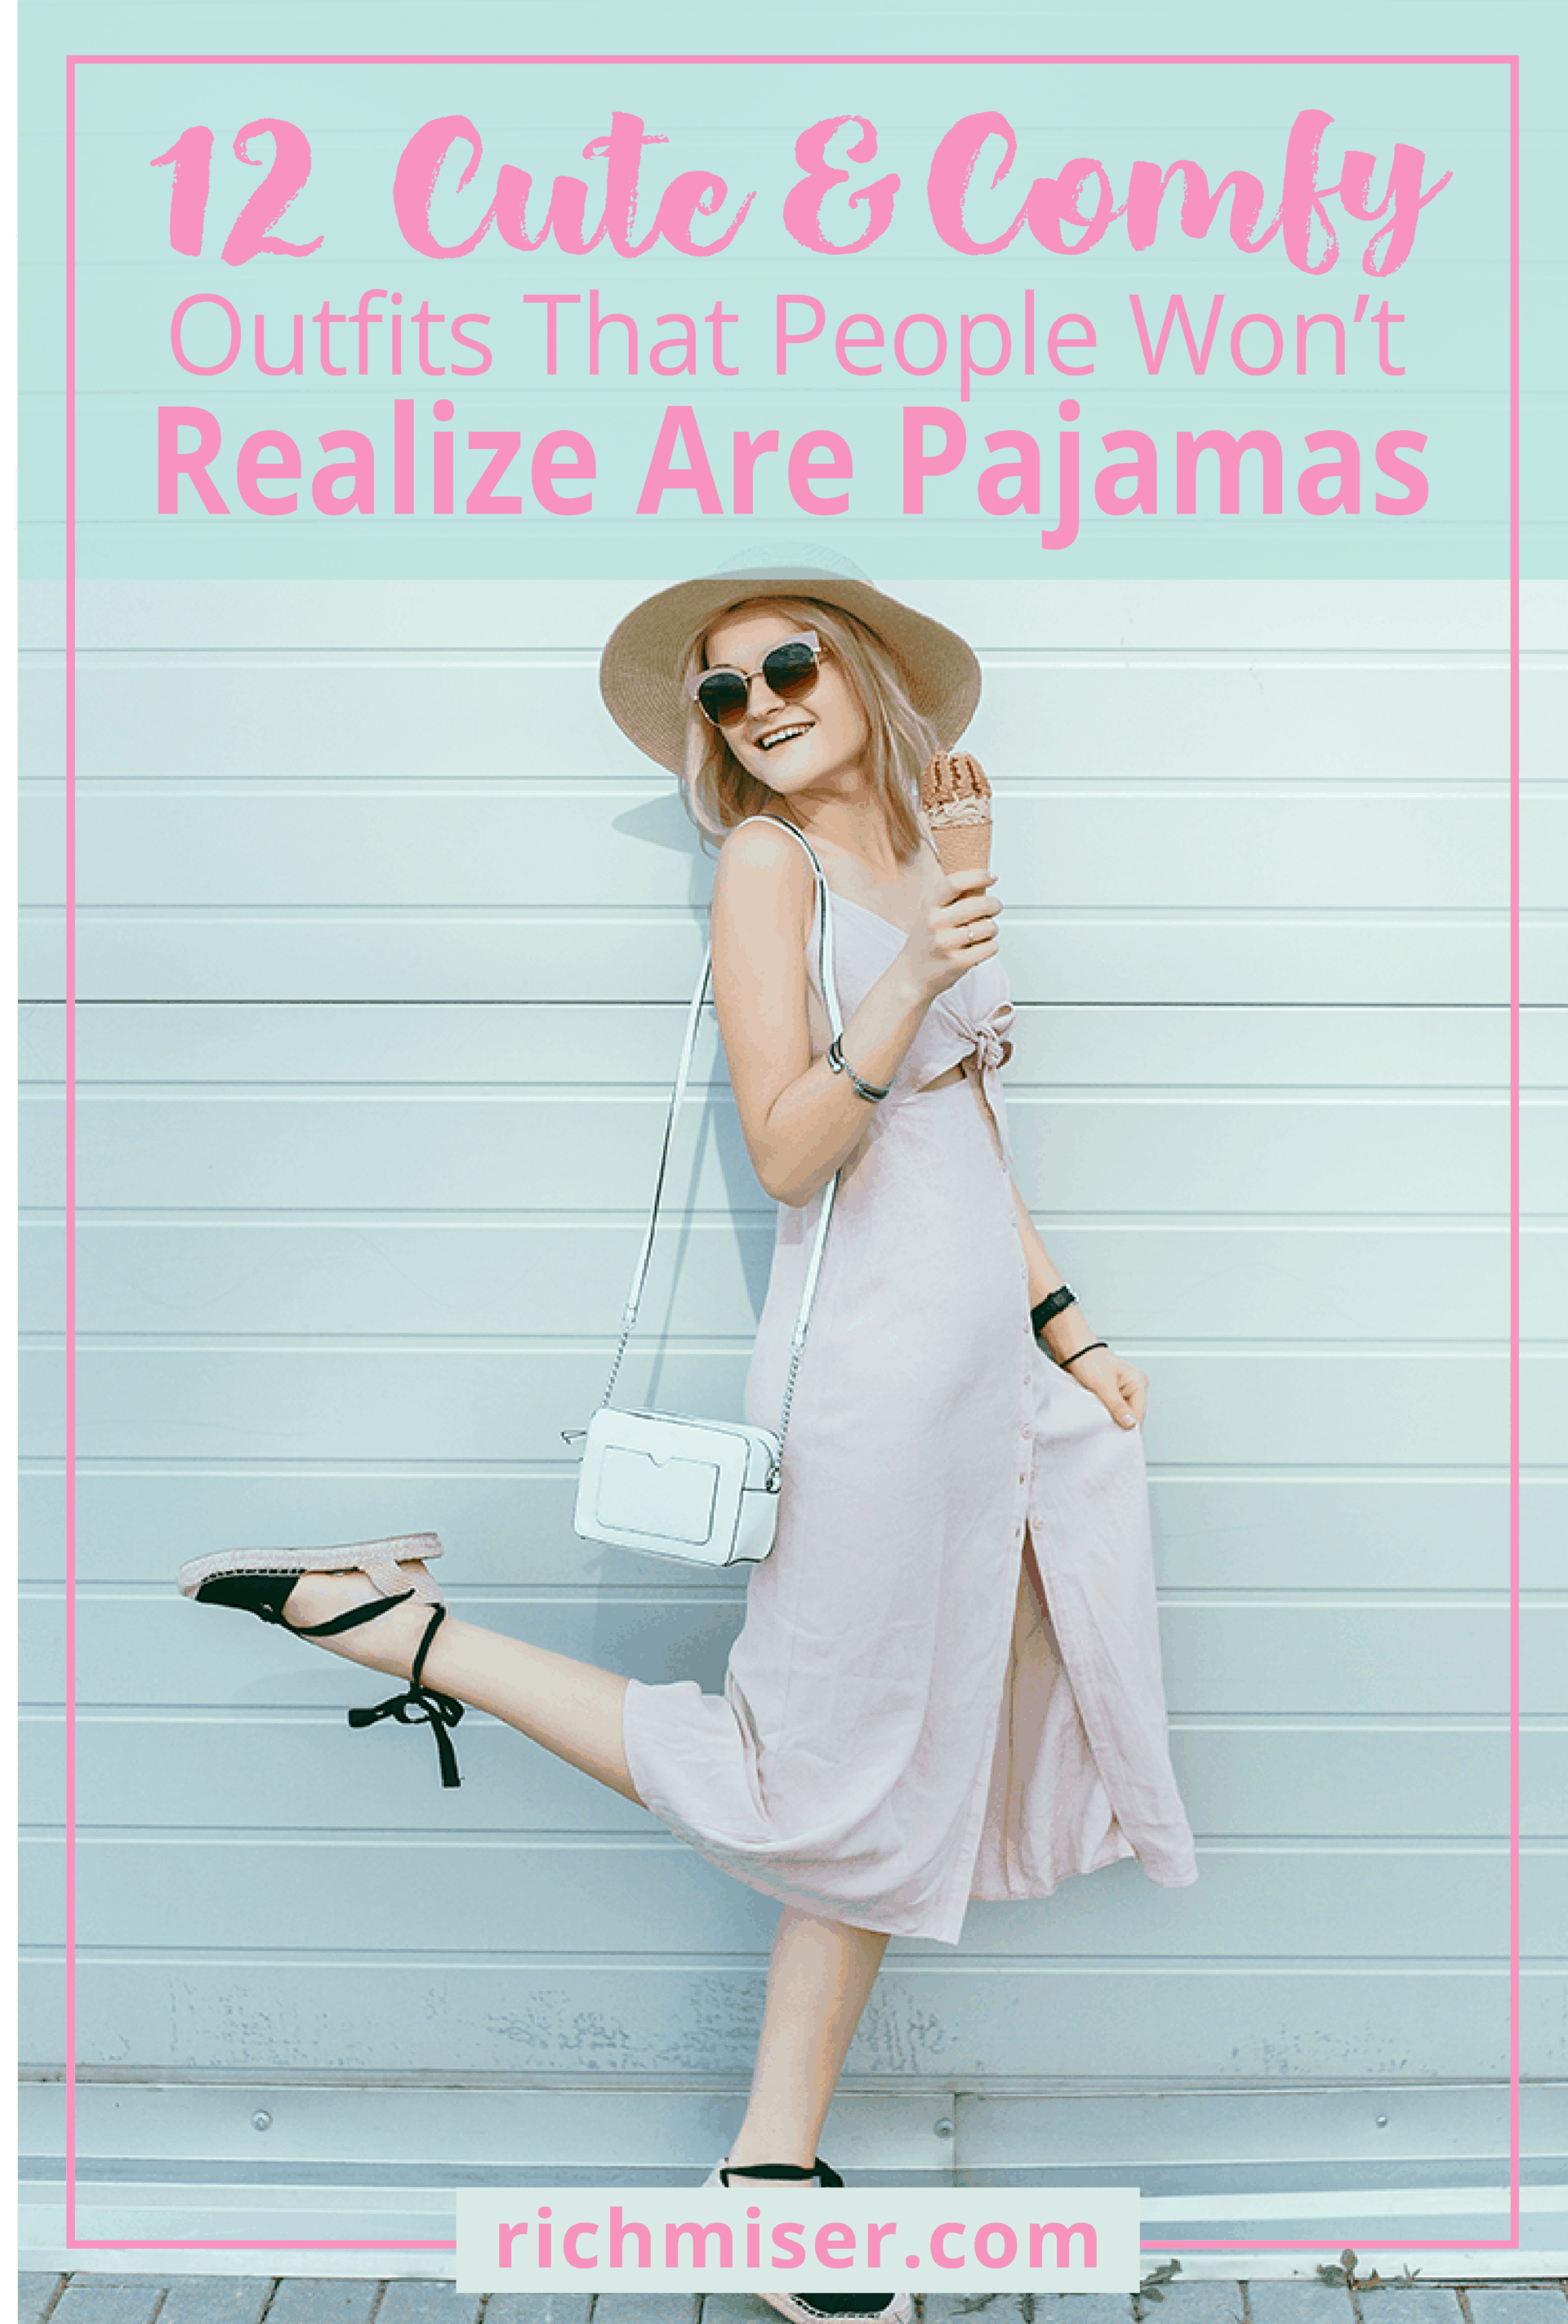 12 Cute & Comfy Outfits That People Won't Realize Are Pajamas